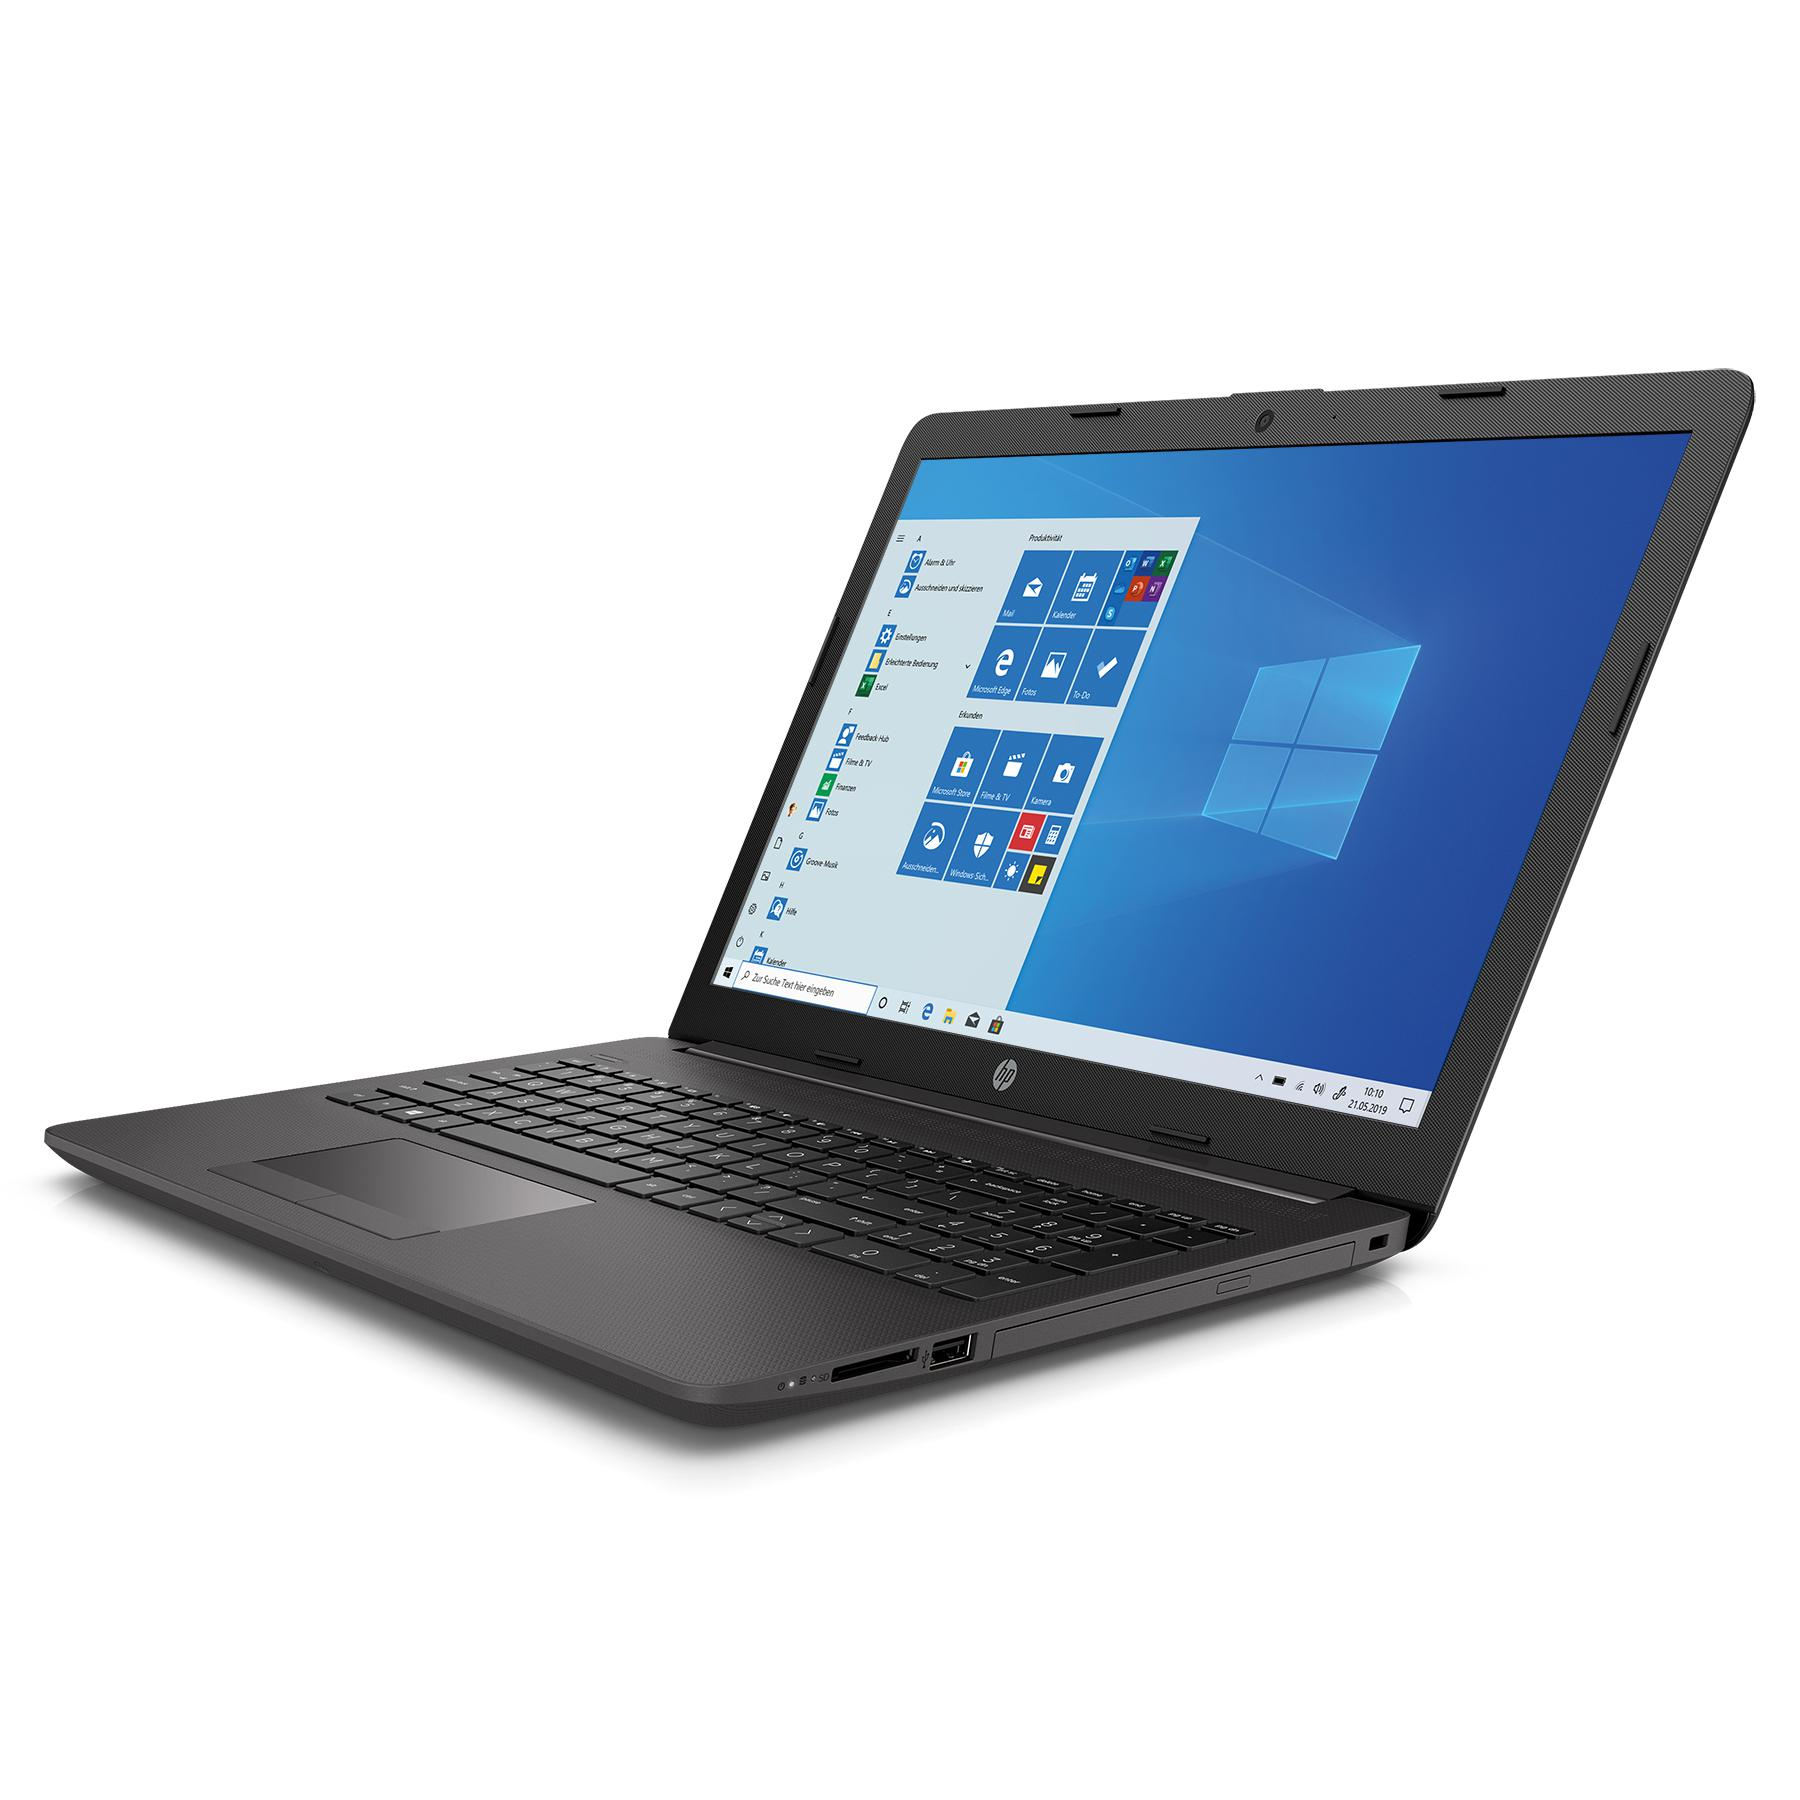 Hewlett Packard (HP) 250 G7 6HM85ES 15,6 Full HD, Intel i5-8265U, 8GB RAM, 512GB SSD, DVD, Windows 10